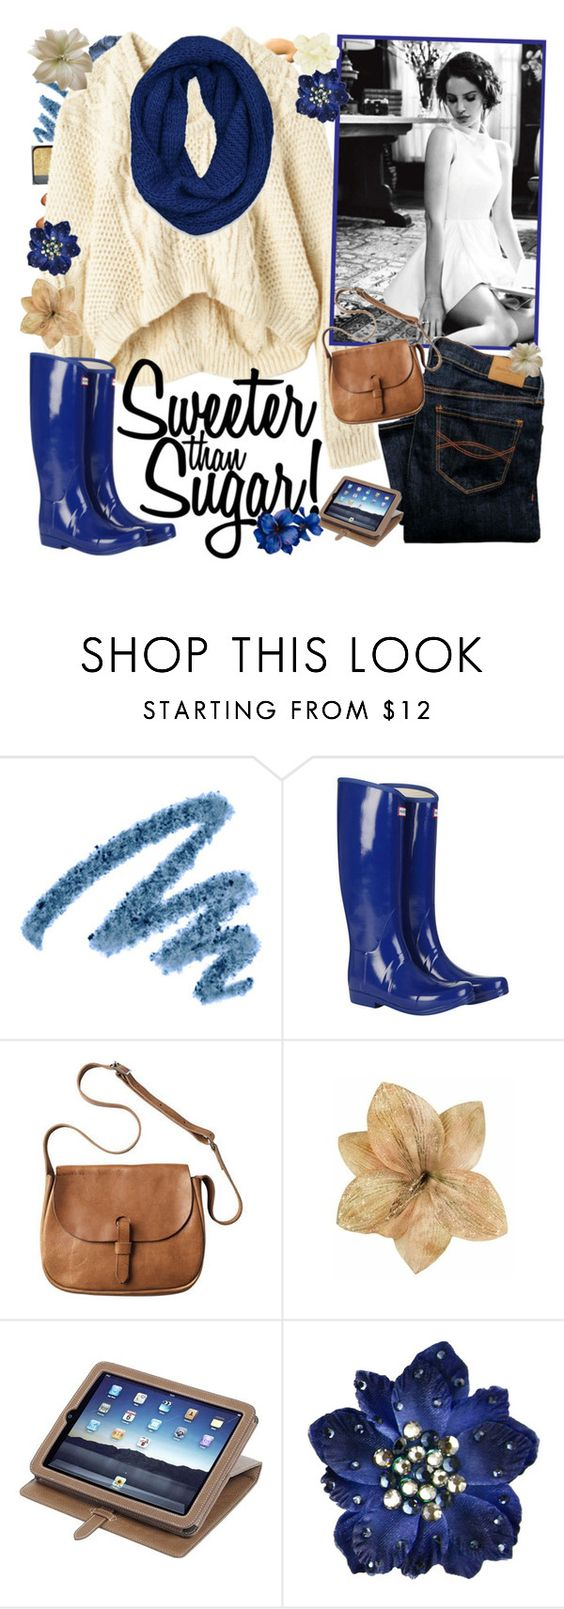 """""""shitty set , but oh well ."""" by chika-maee-loves-youu ❤ liked on Polyvore featuring Yves Saint Laurent, NARS Cosmetics, Marc by Marc Jacobs, Hunter, Toast, Clips, Mulberry, Tarina Tarantino, Freeze and Hollister Co."""